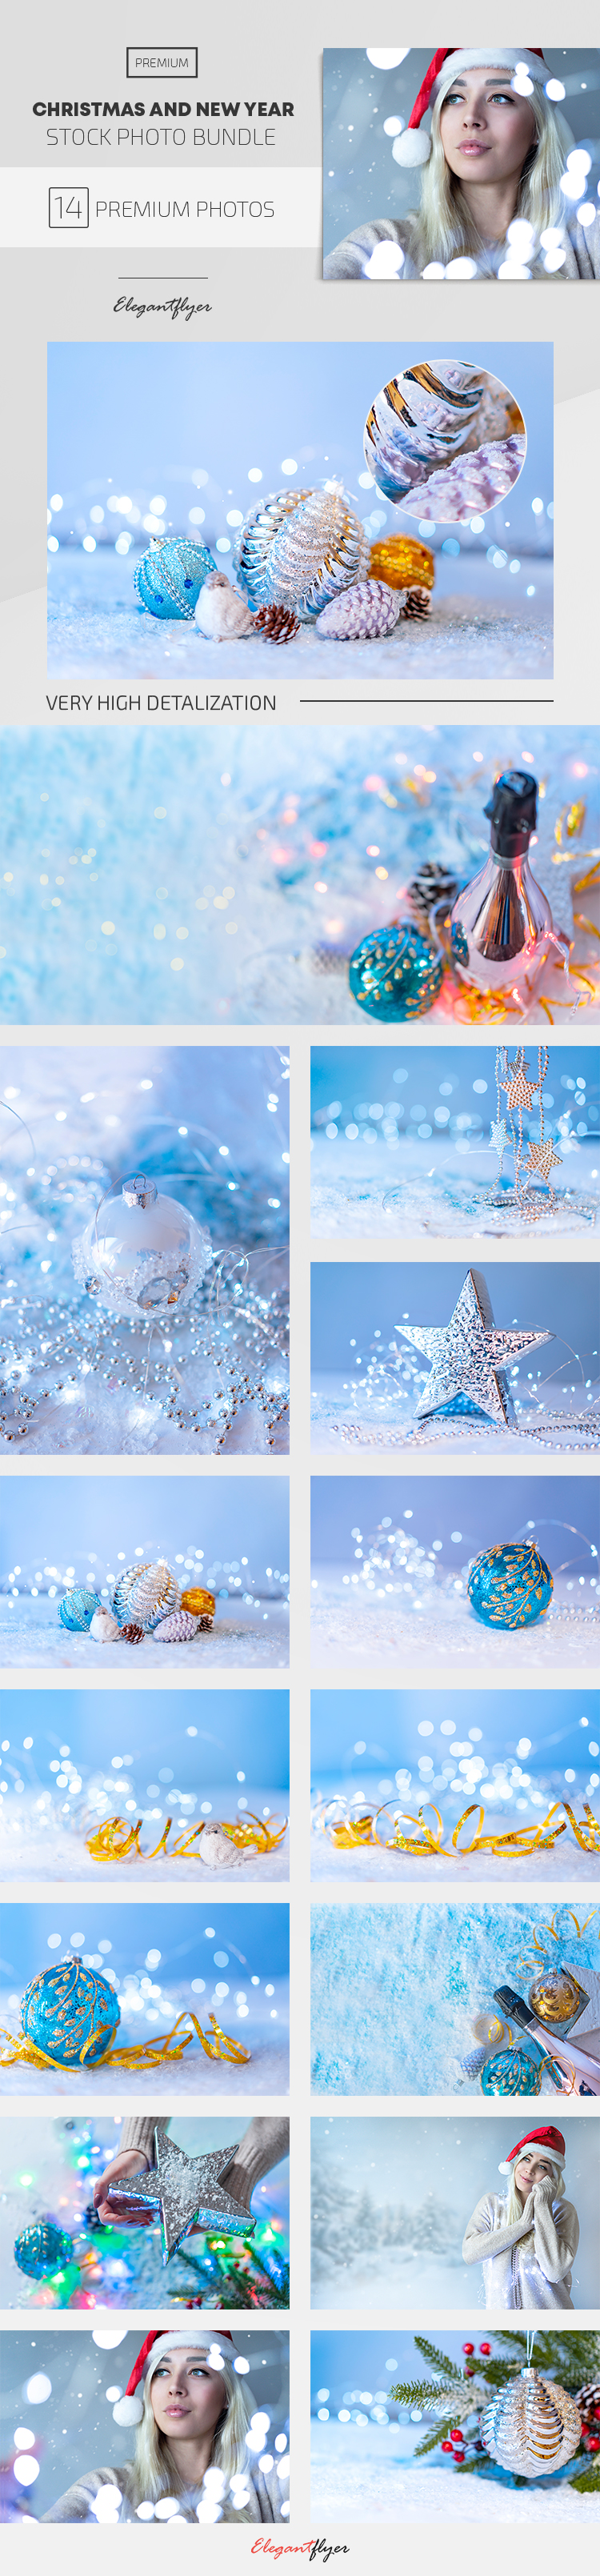 Christmas and New Year – 14 Premium Stock Photos Bundle